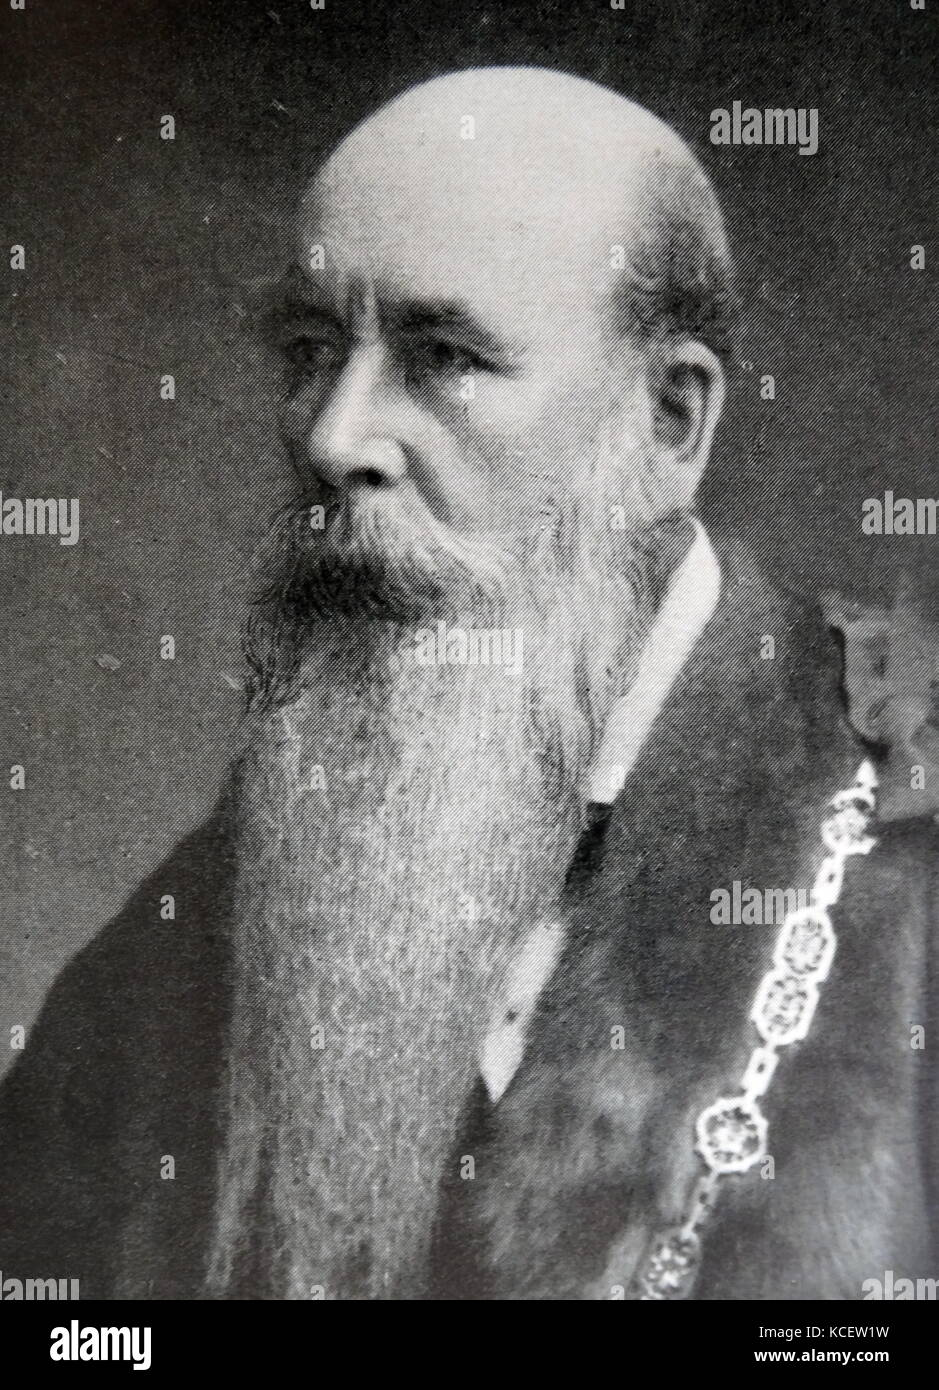 Sir John Aird, 1st Baronet (3 December 1833 – 6 January 1911) was a notable English civil engineering contractor - Stock Image